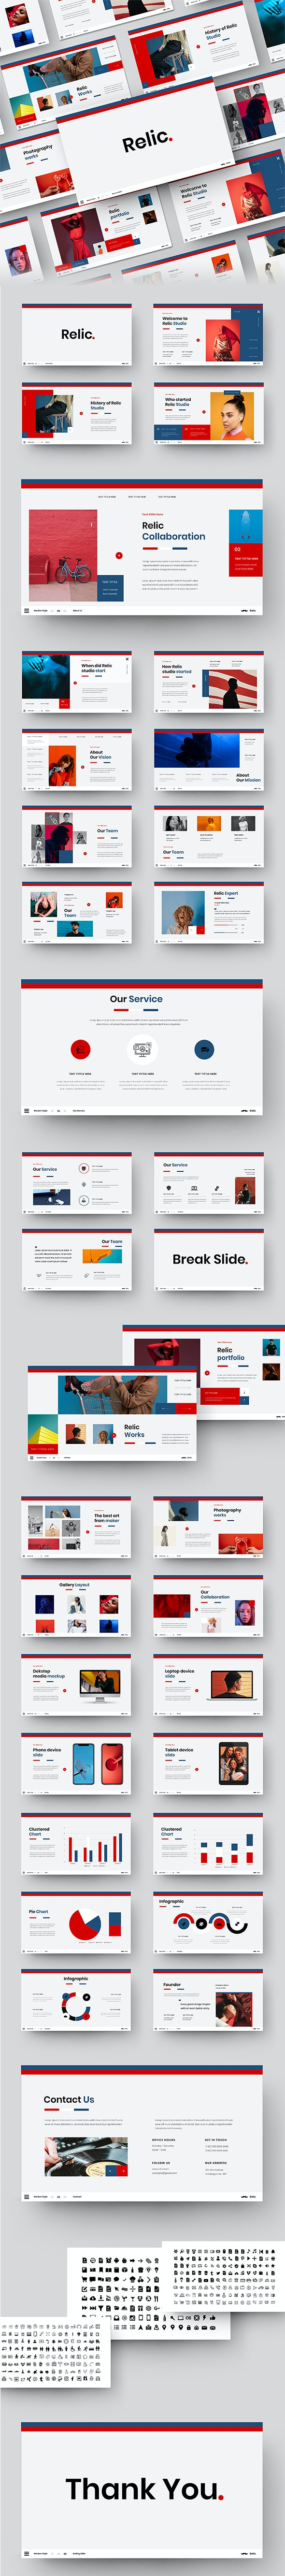 Relic – Business PowerPoint Template - Business PowerPoint Templates